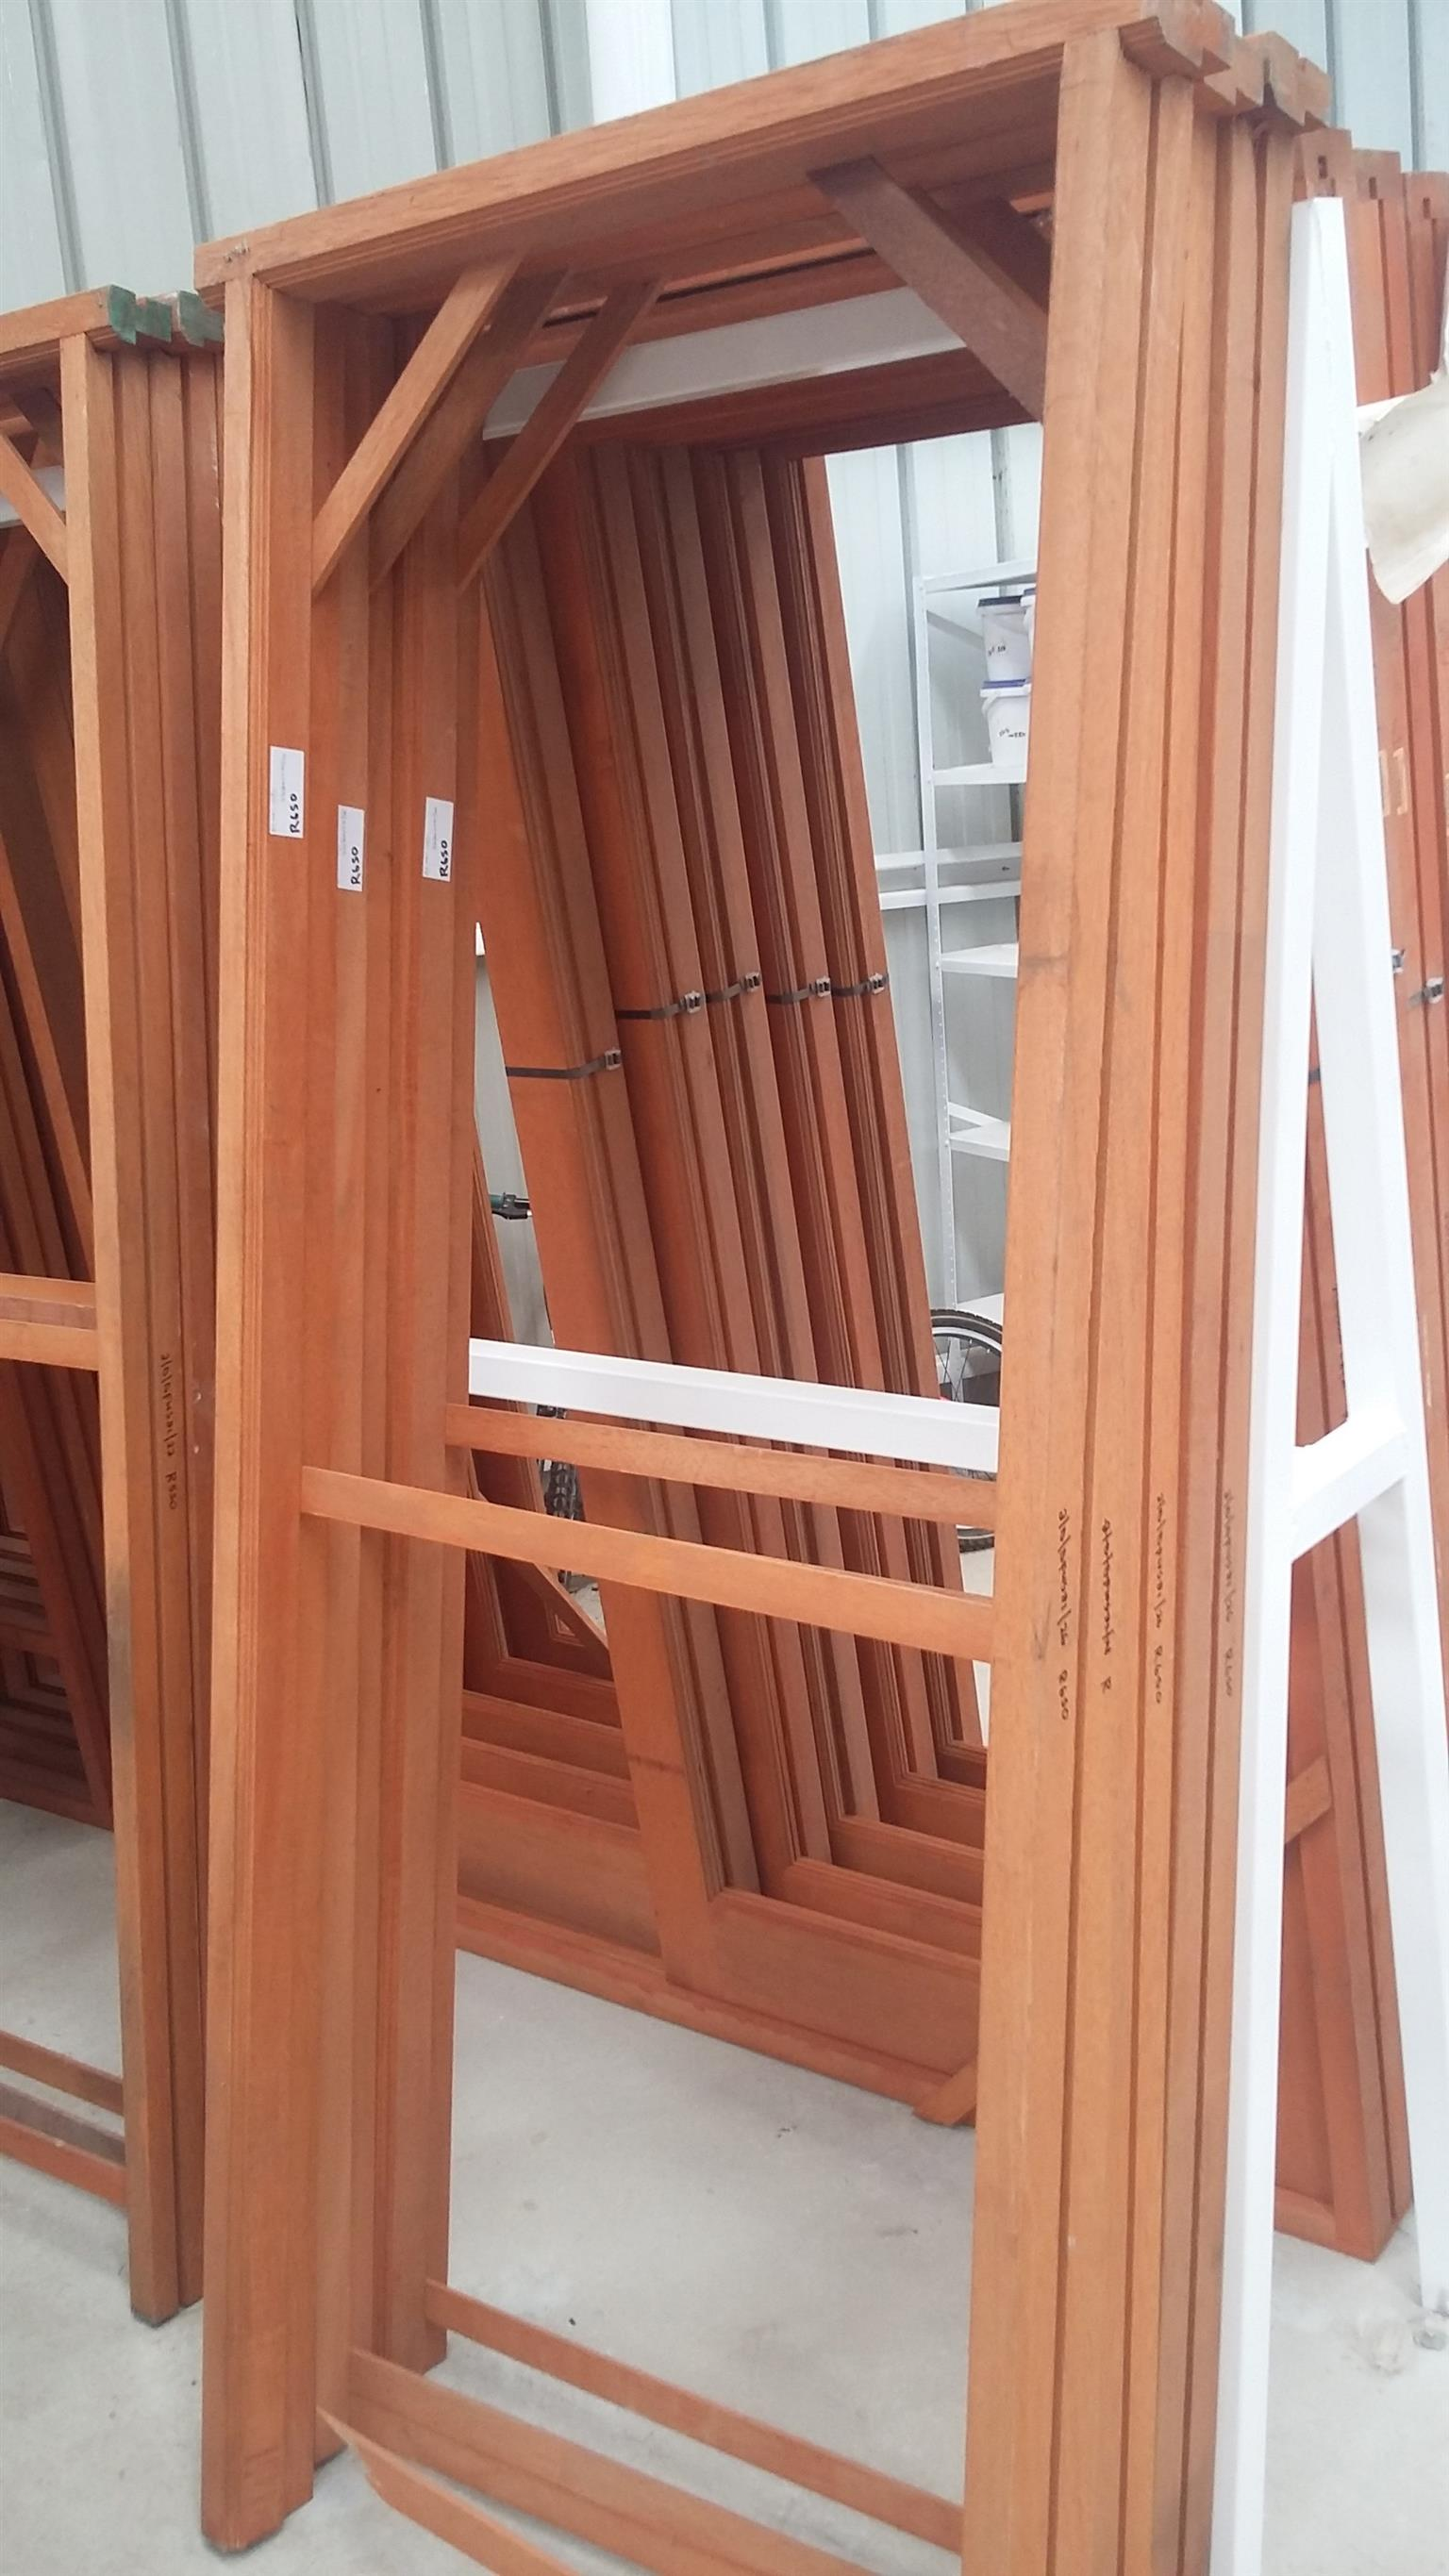 New Meranti Door Frames & New Meranti Door Frames | Junk Mail